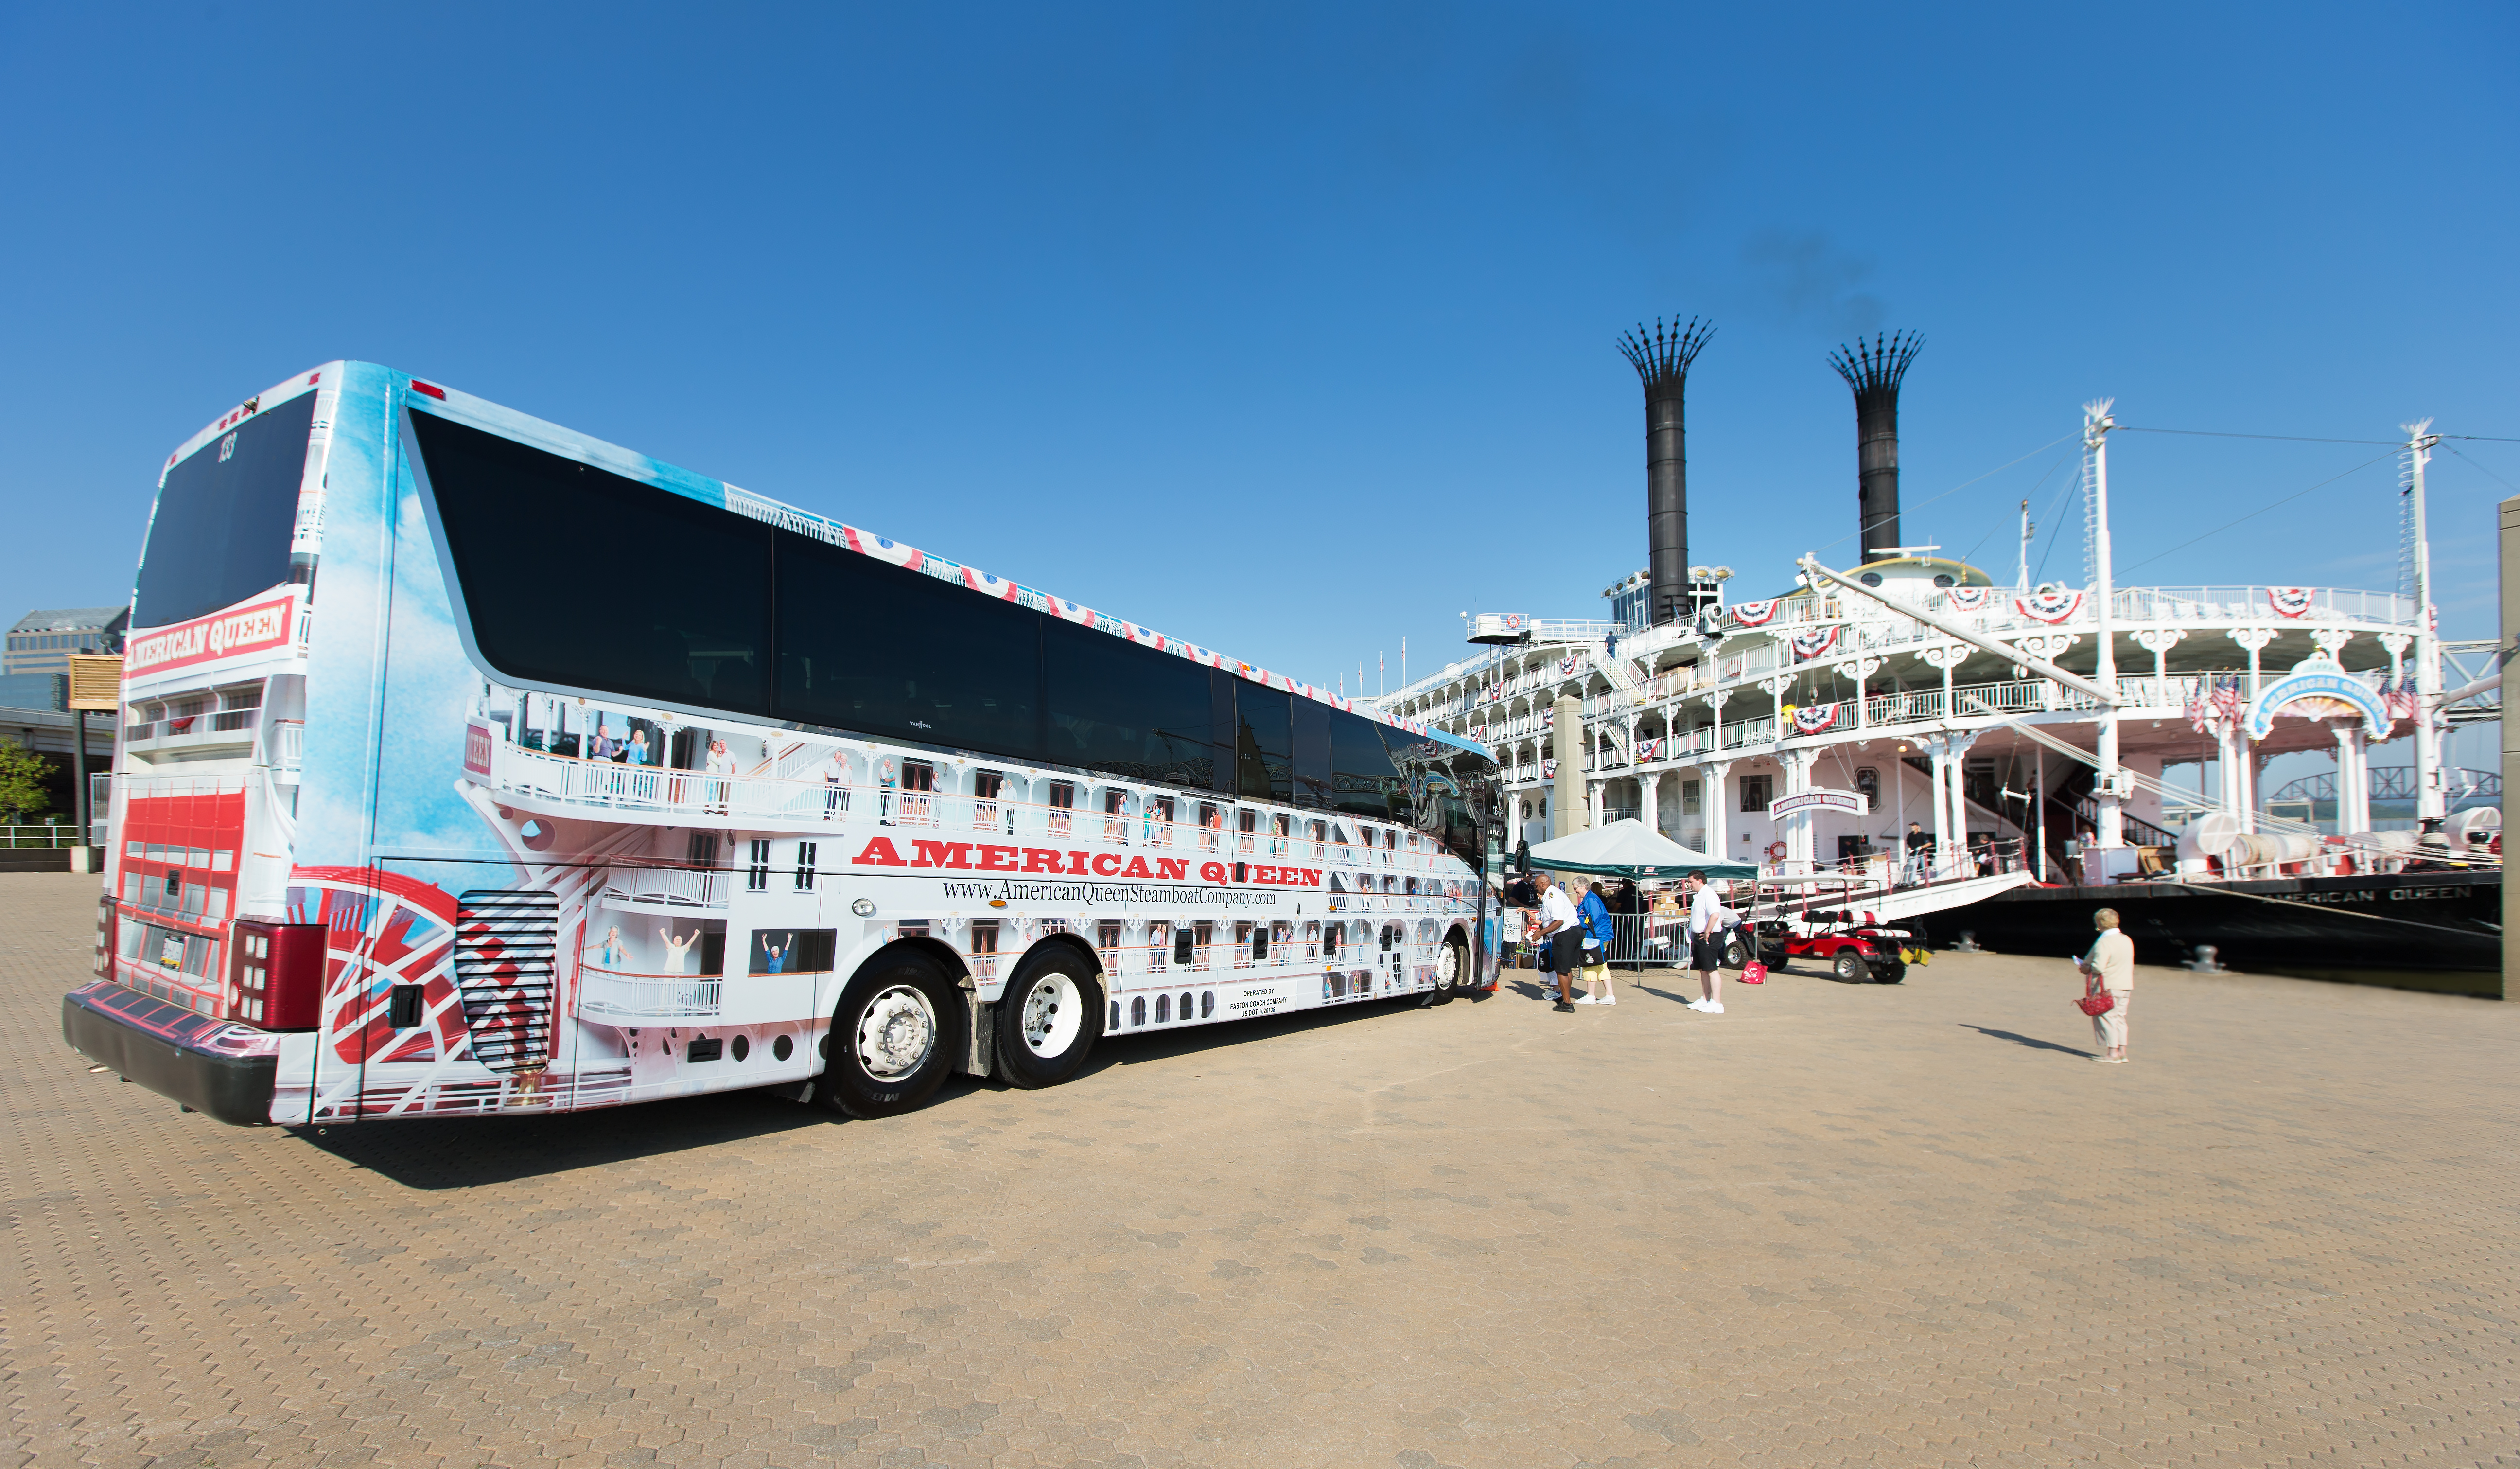 American Queen Steamboat Company General Images Narrated Tours.jpg